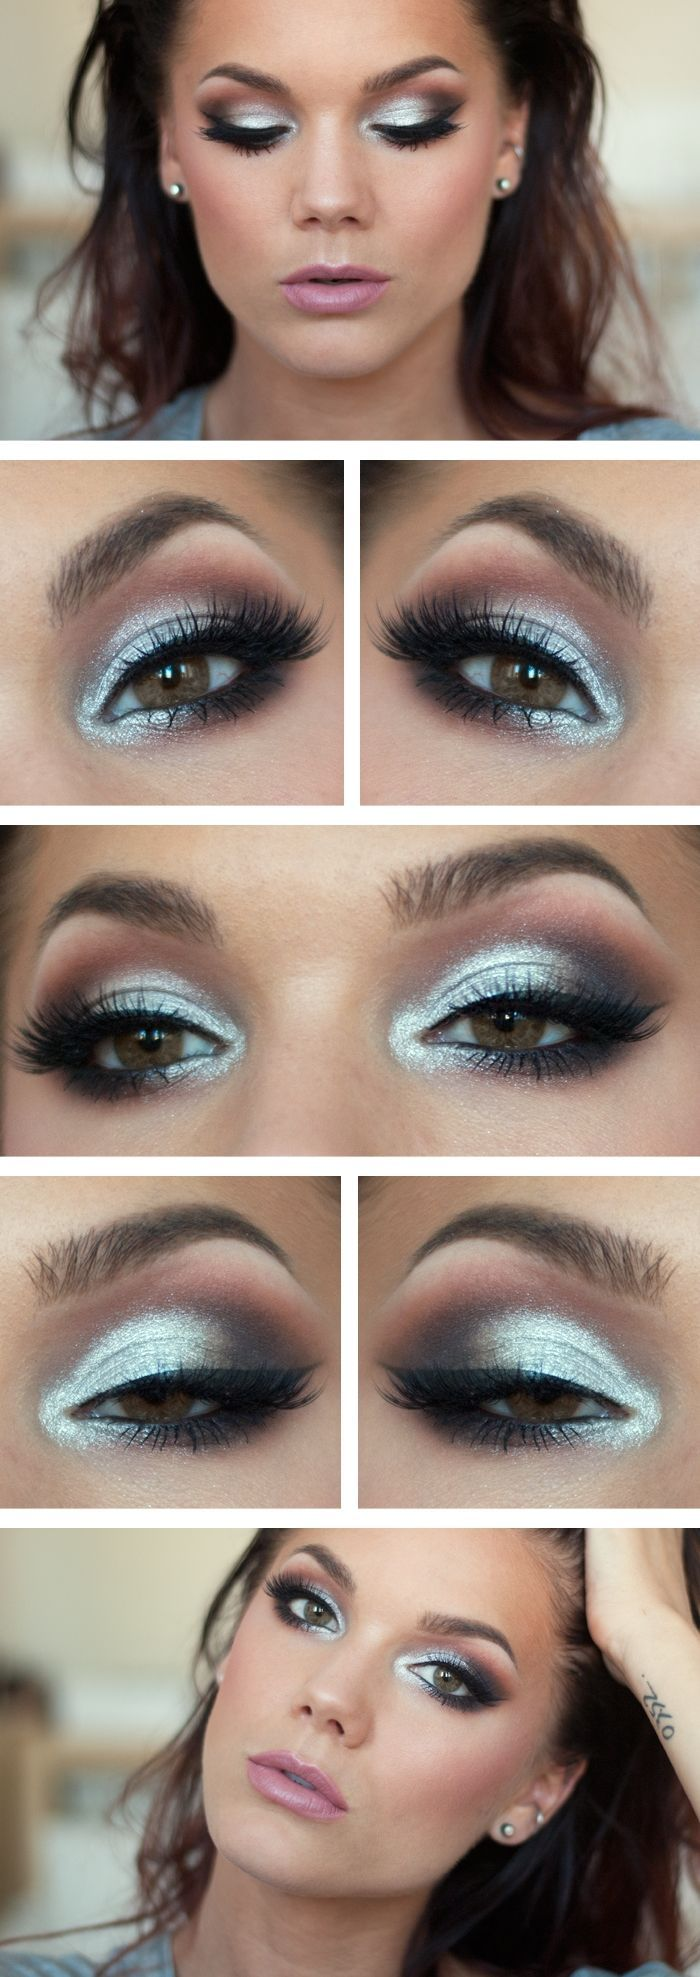 ♥ TRY with Younique products https://www.youniqueproducts.com/ryannegroni/products/landing